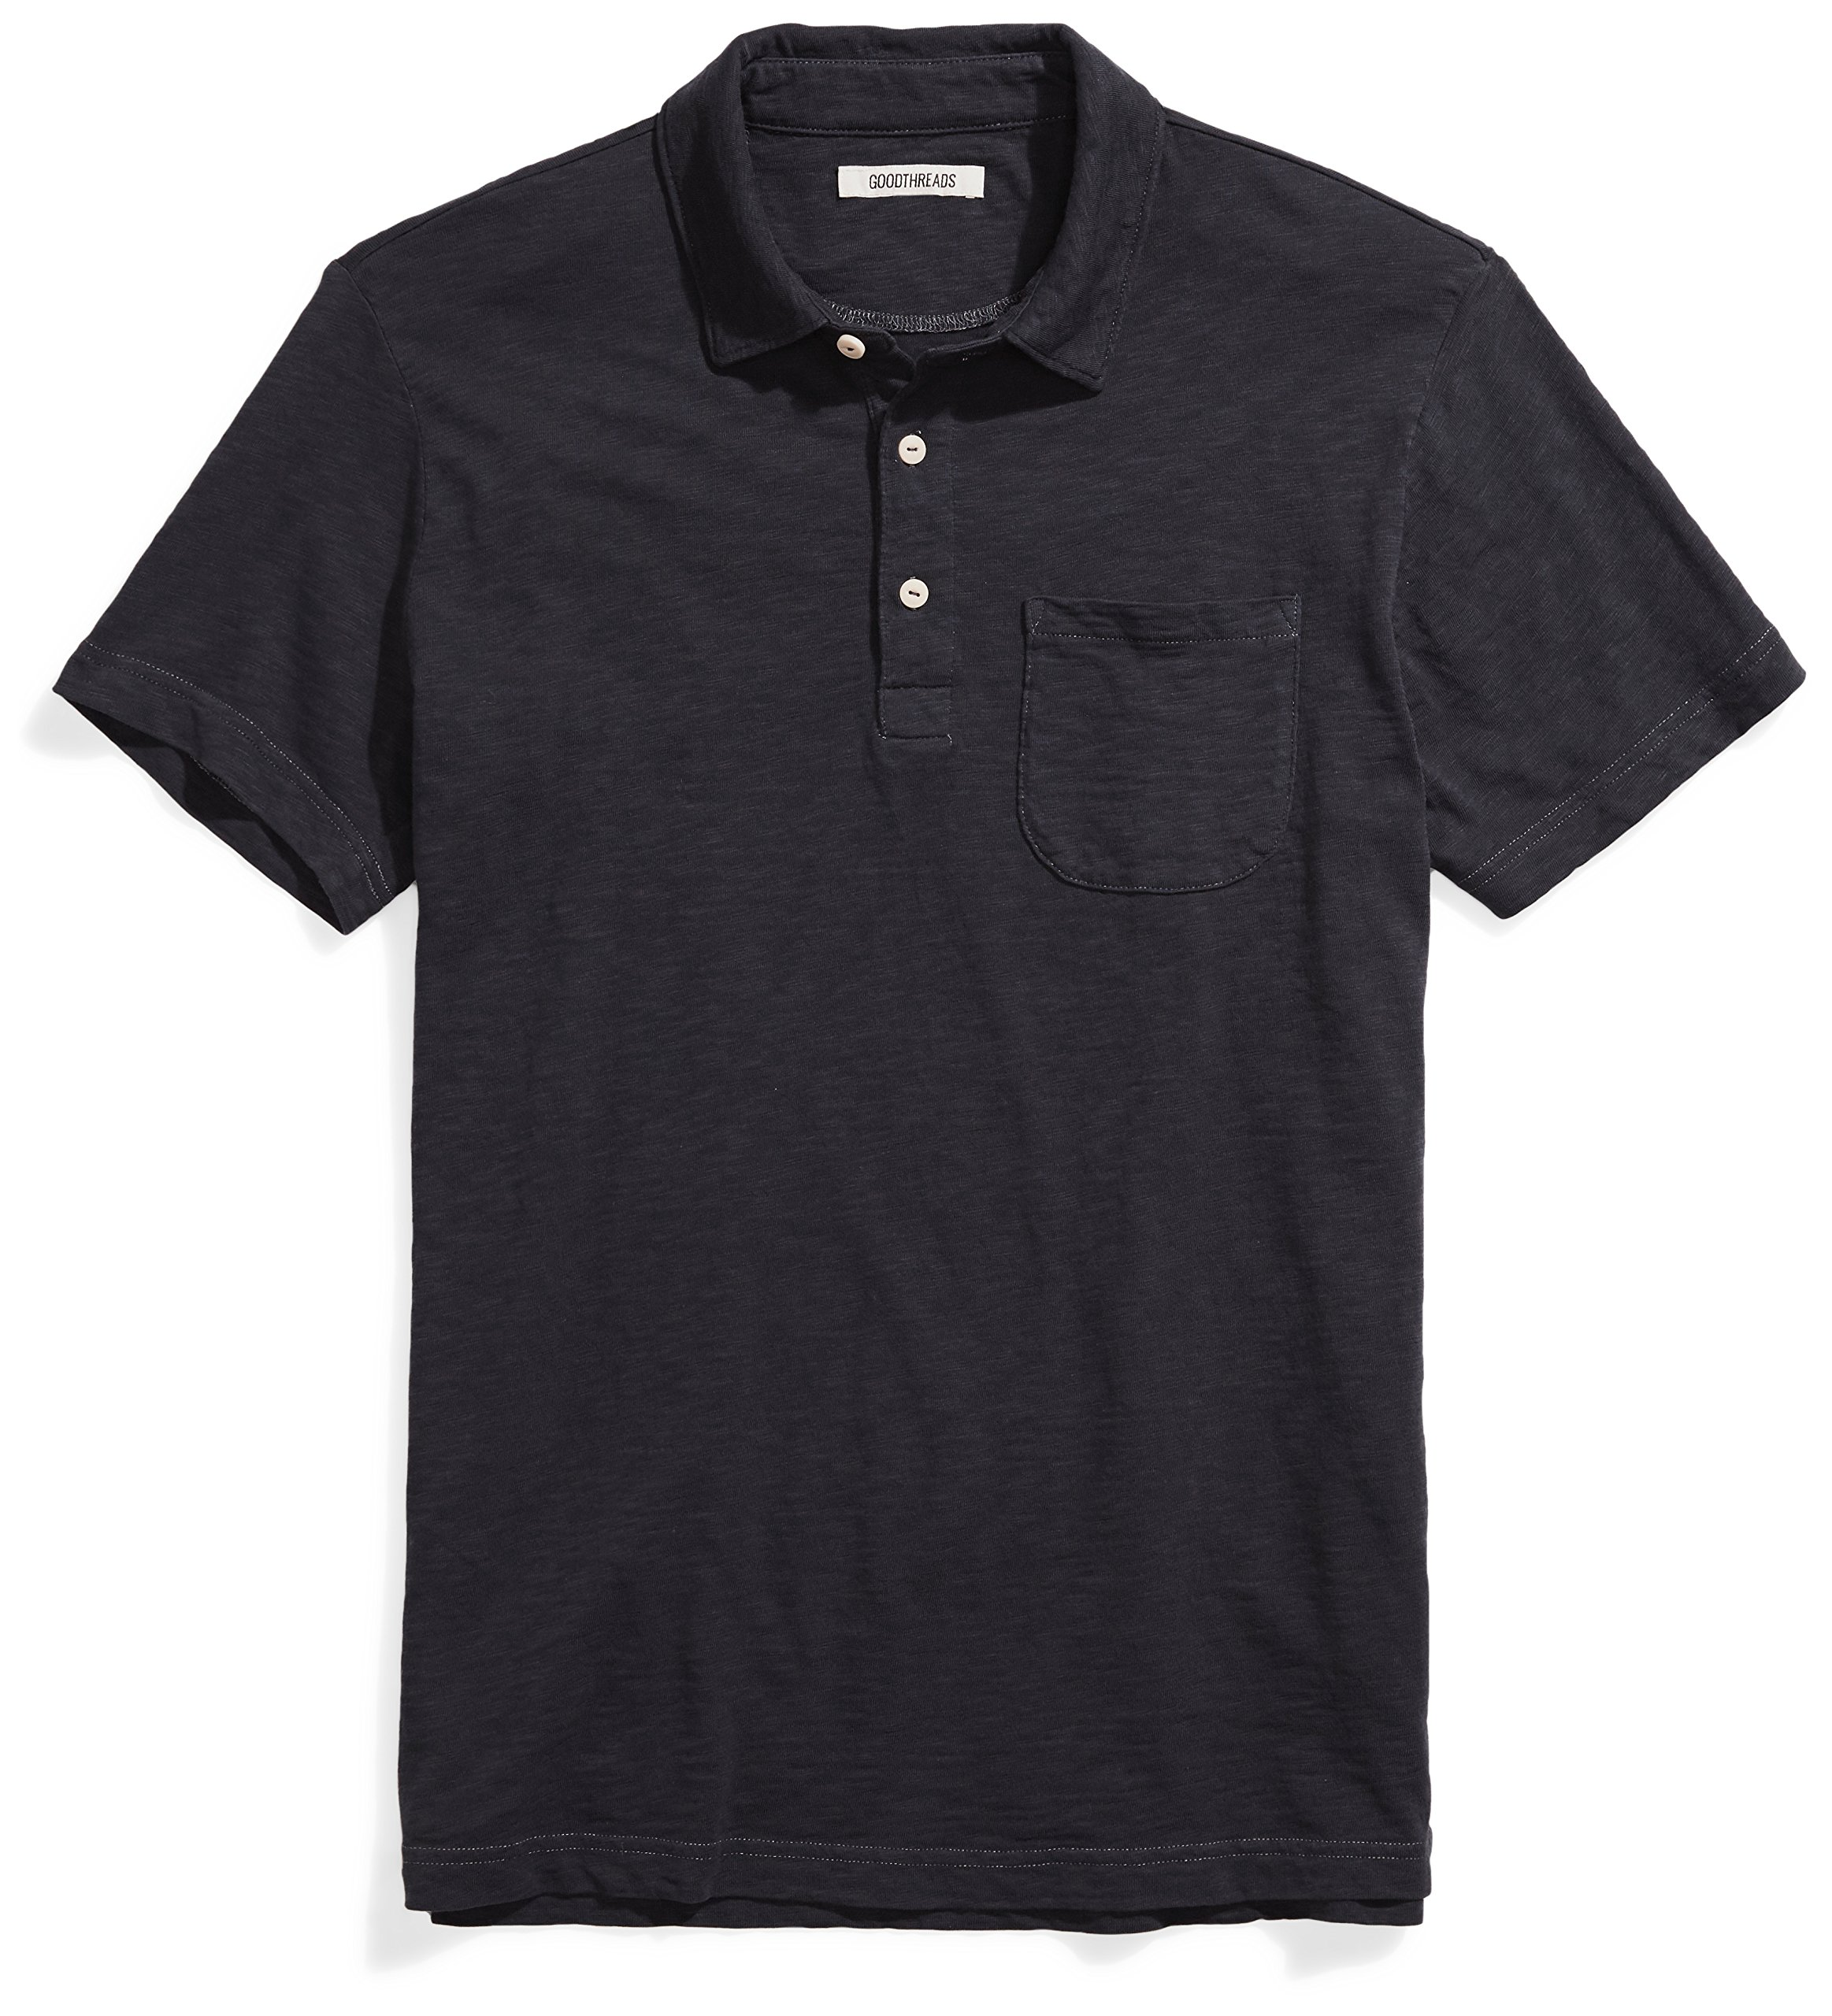 Goodthreads Men's Short-Sleeve Slub Polo, Caviar/Black, Medium